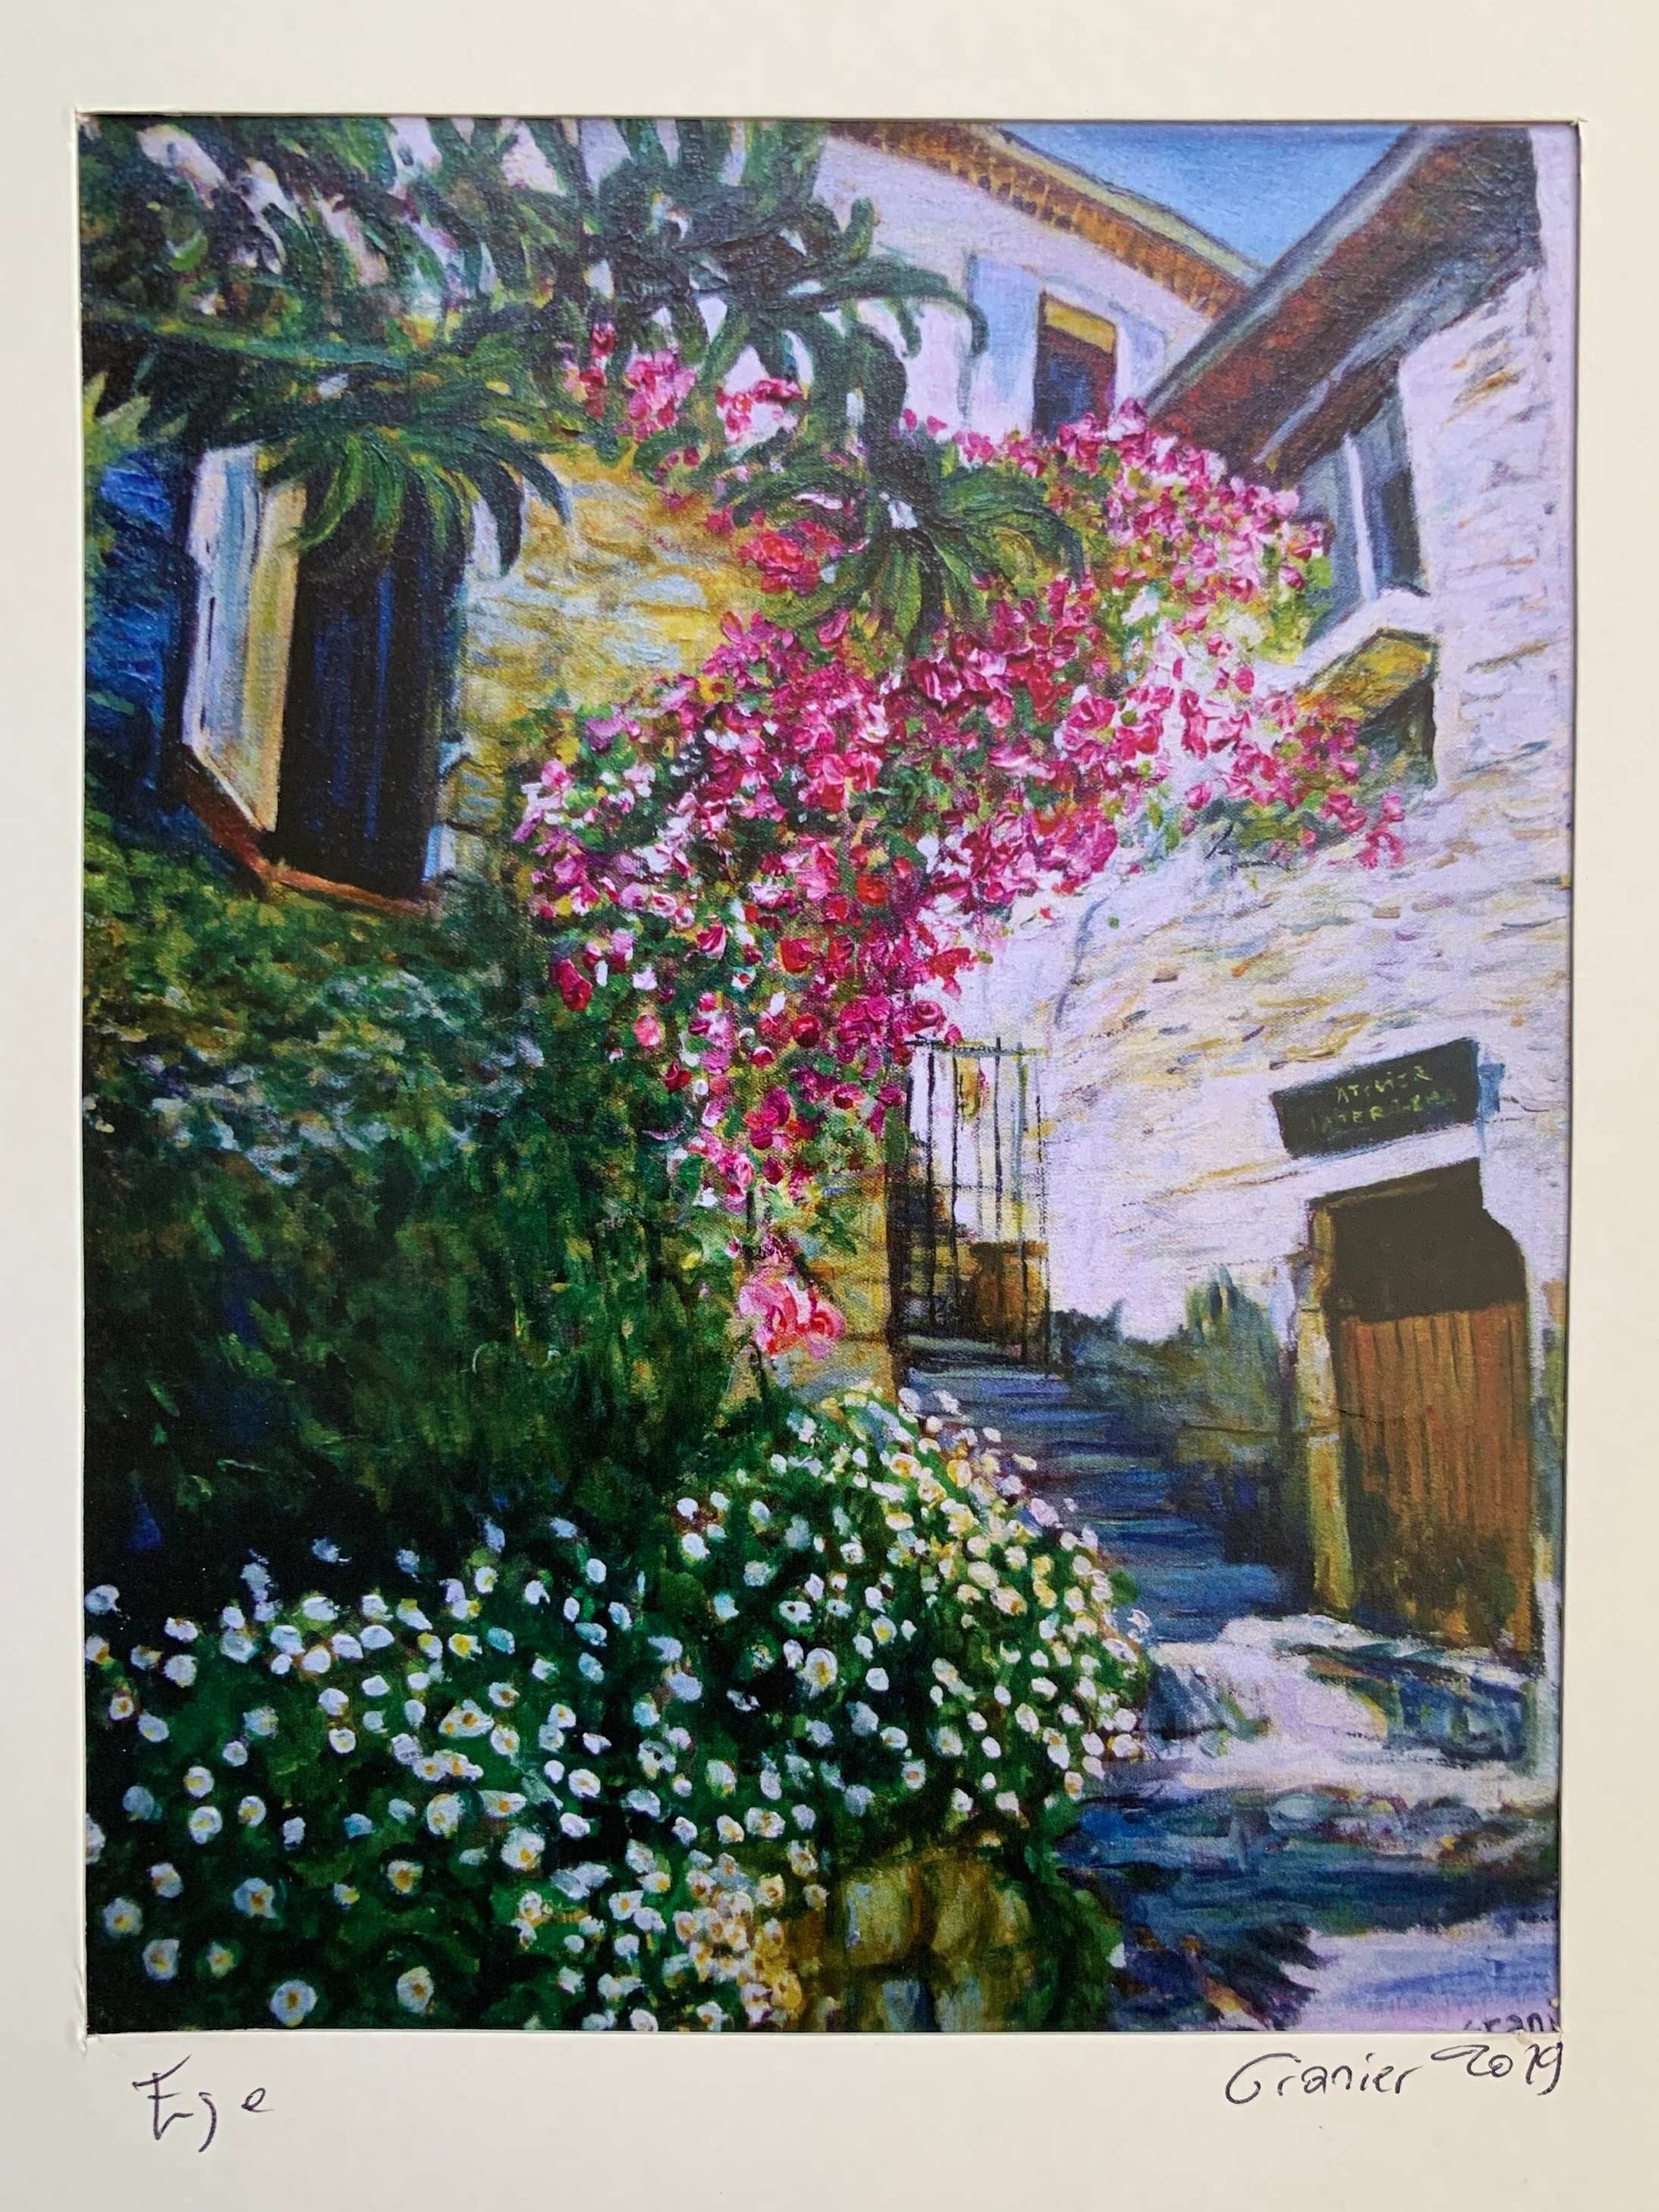 A piece of art I picked up at the Flower Market in Nice of Eze